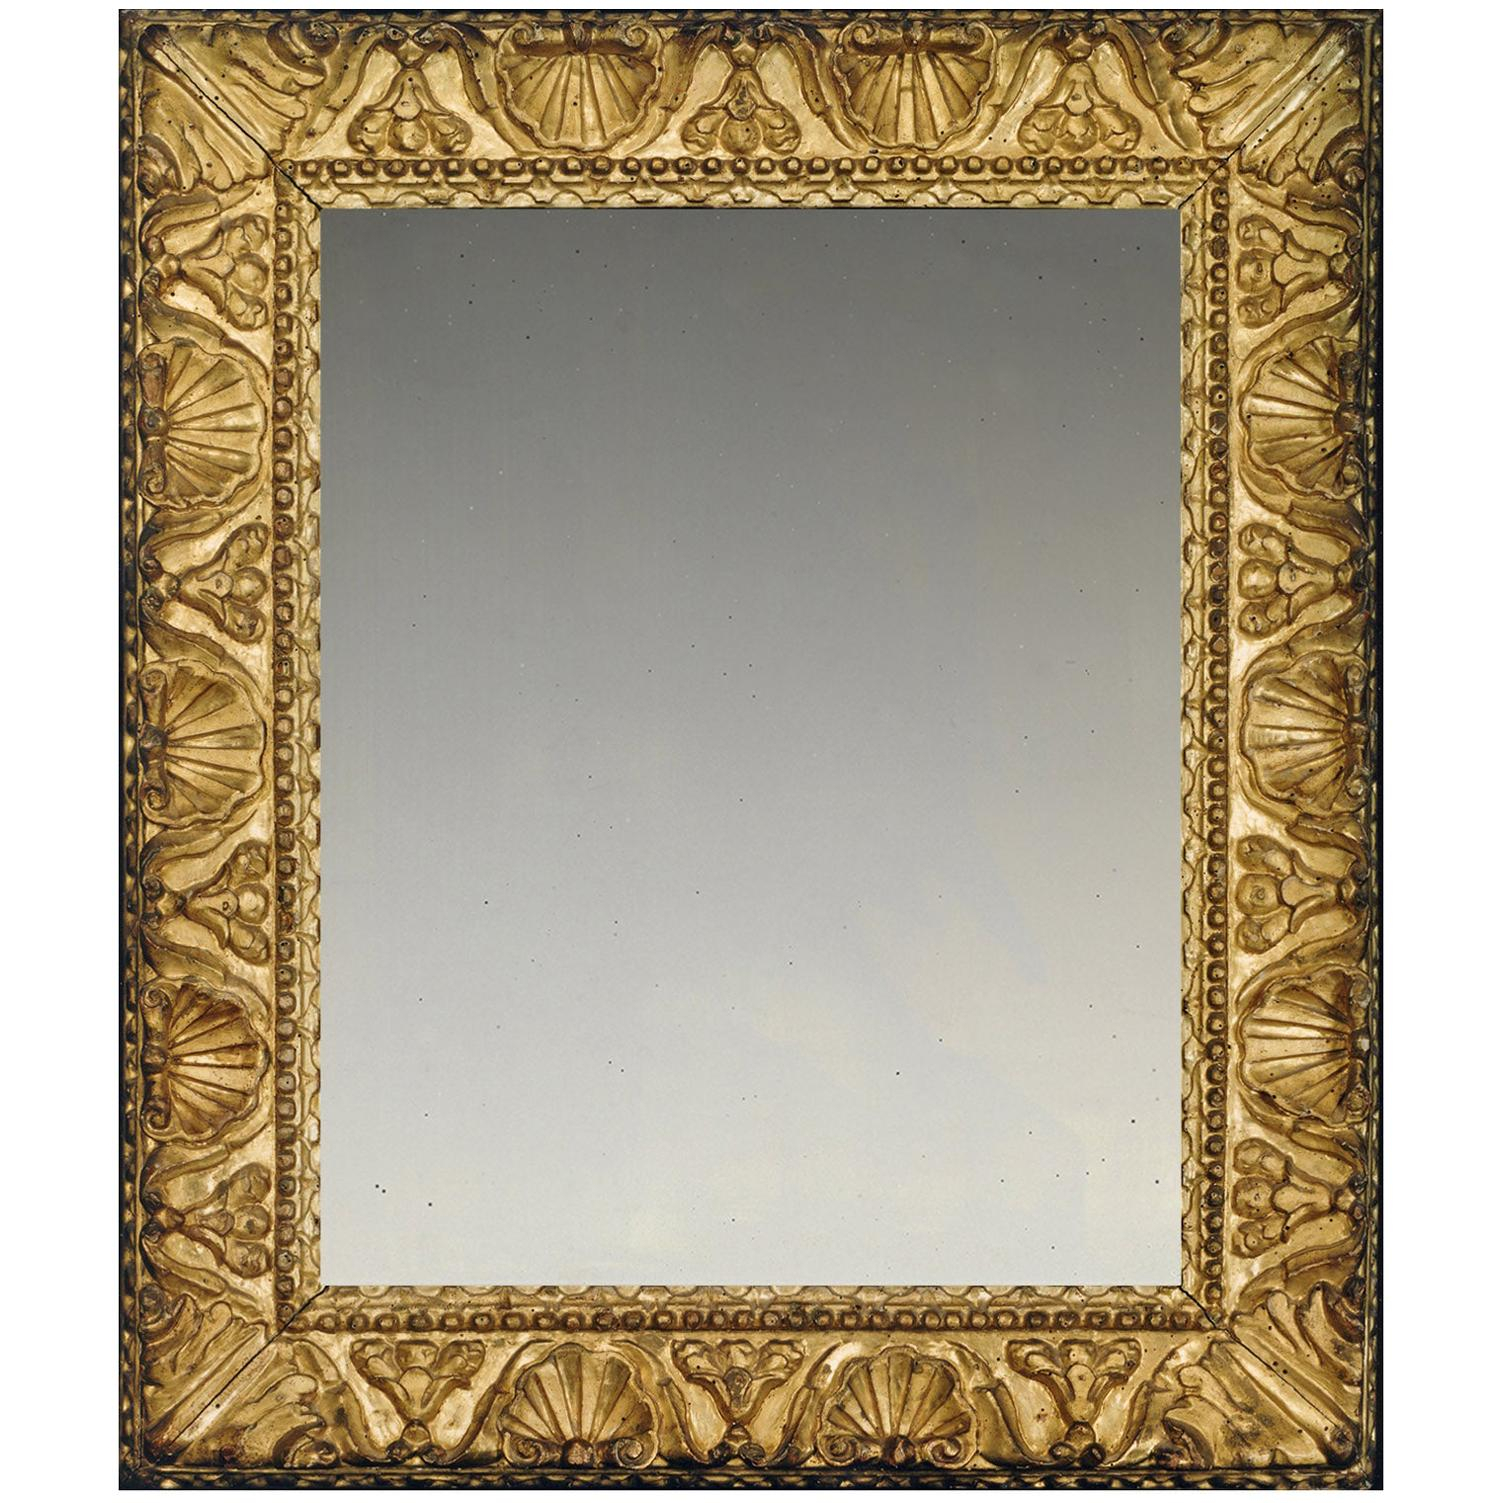 Antique And Vintage Mirrors – 16,830 For Sale At 1Stdibs With Traditional Square Glass Wall Mirrors (Image 1 of 20)